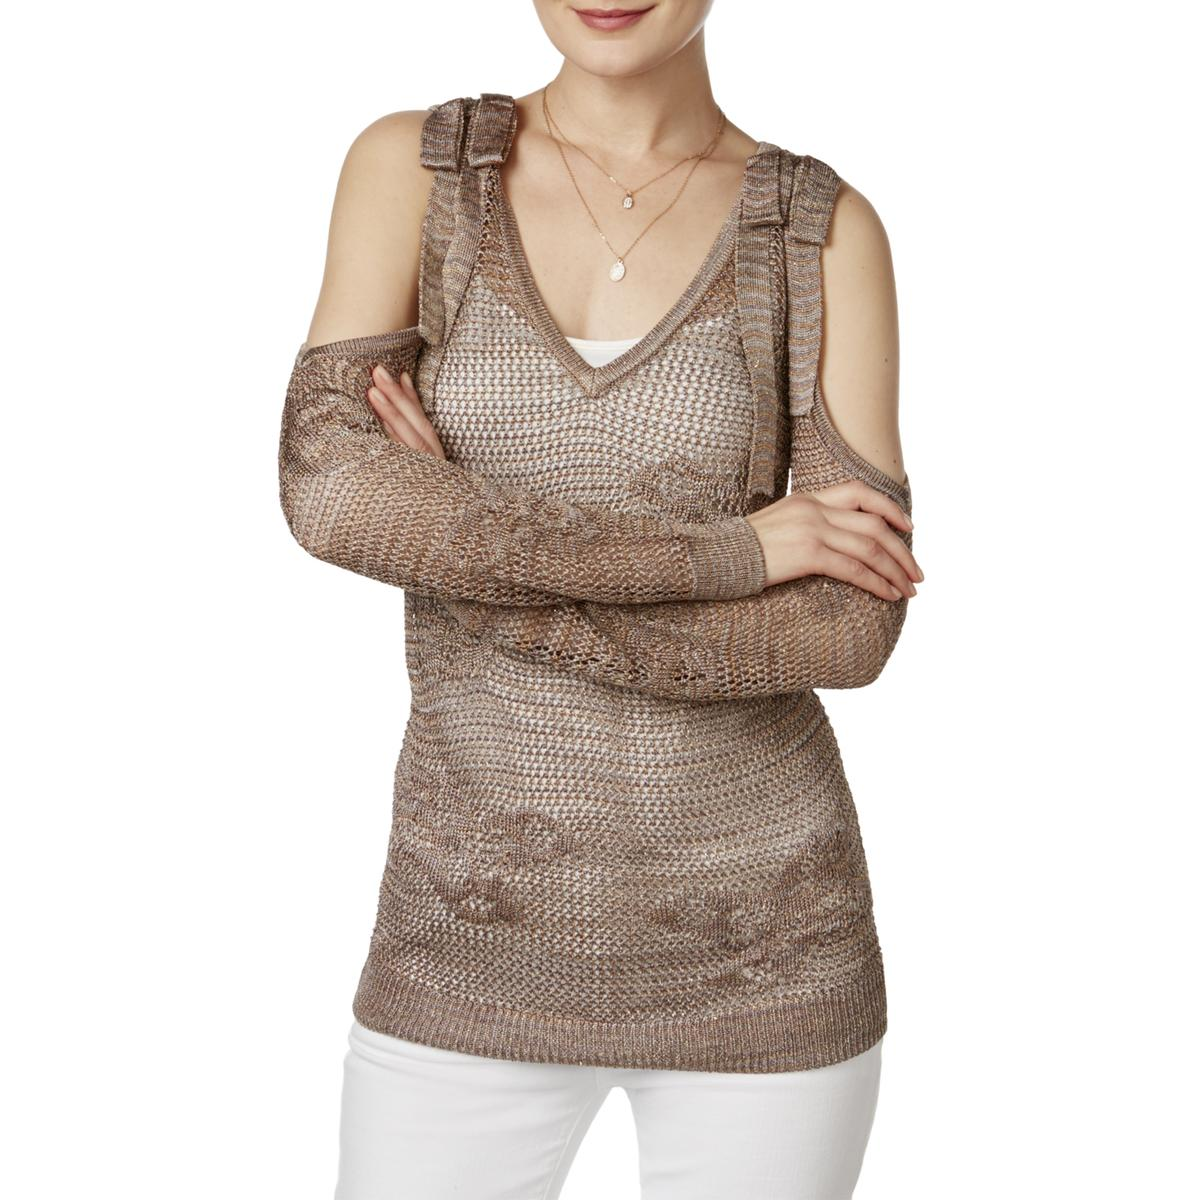 Inc Womens Metallic Off The Shoulder V Neck Sweater Top Bhfo 3877 Ebay